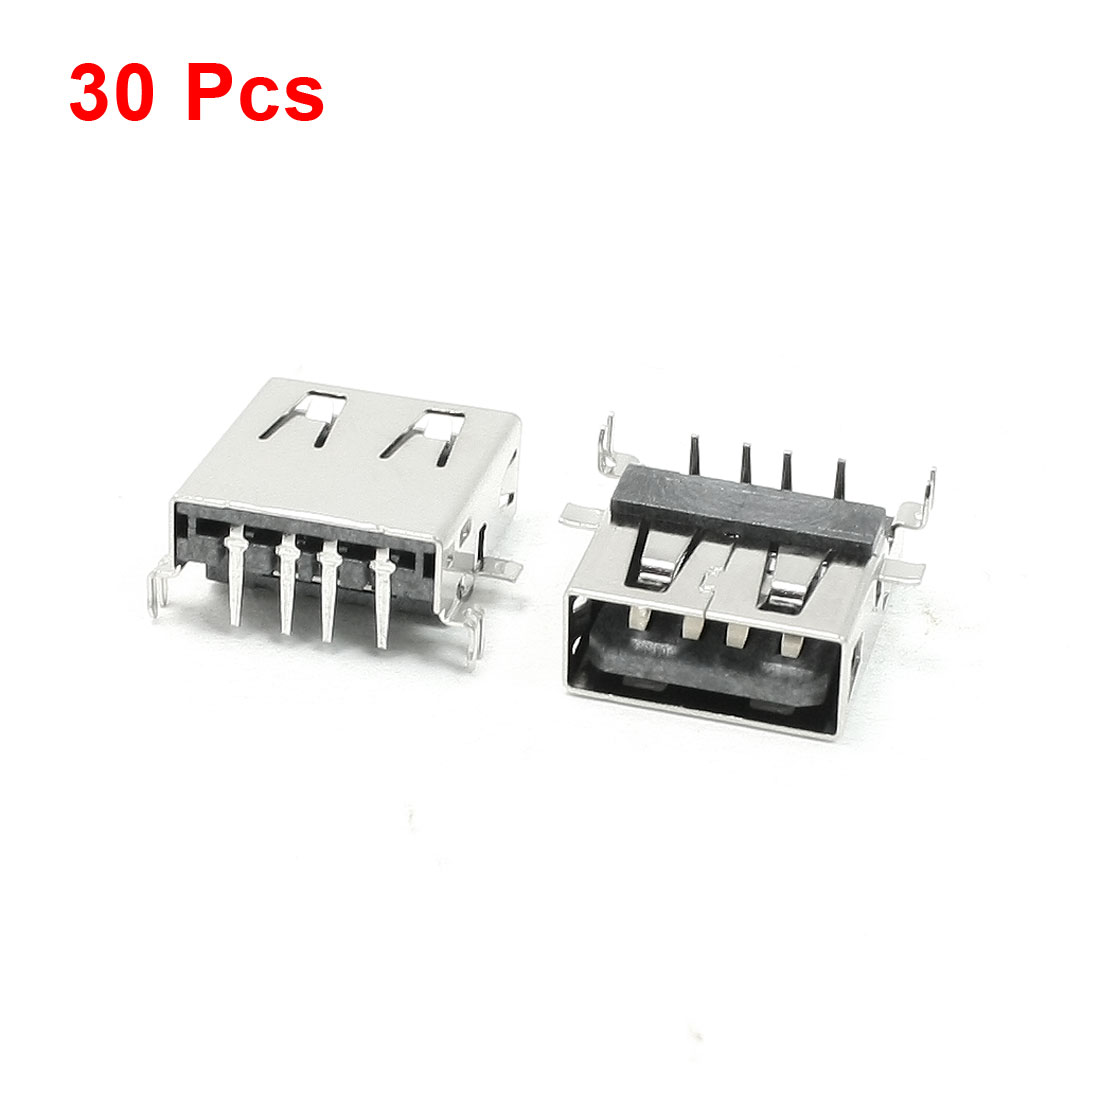 30 Pcs Type A USB 2.0 4 Right Angle Pin Female Jacks Connectors for PCB